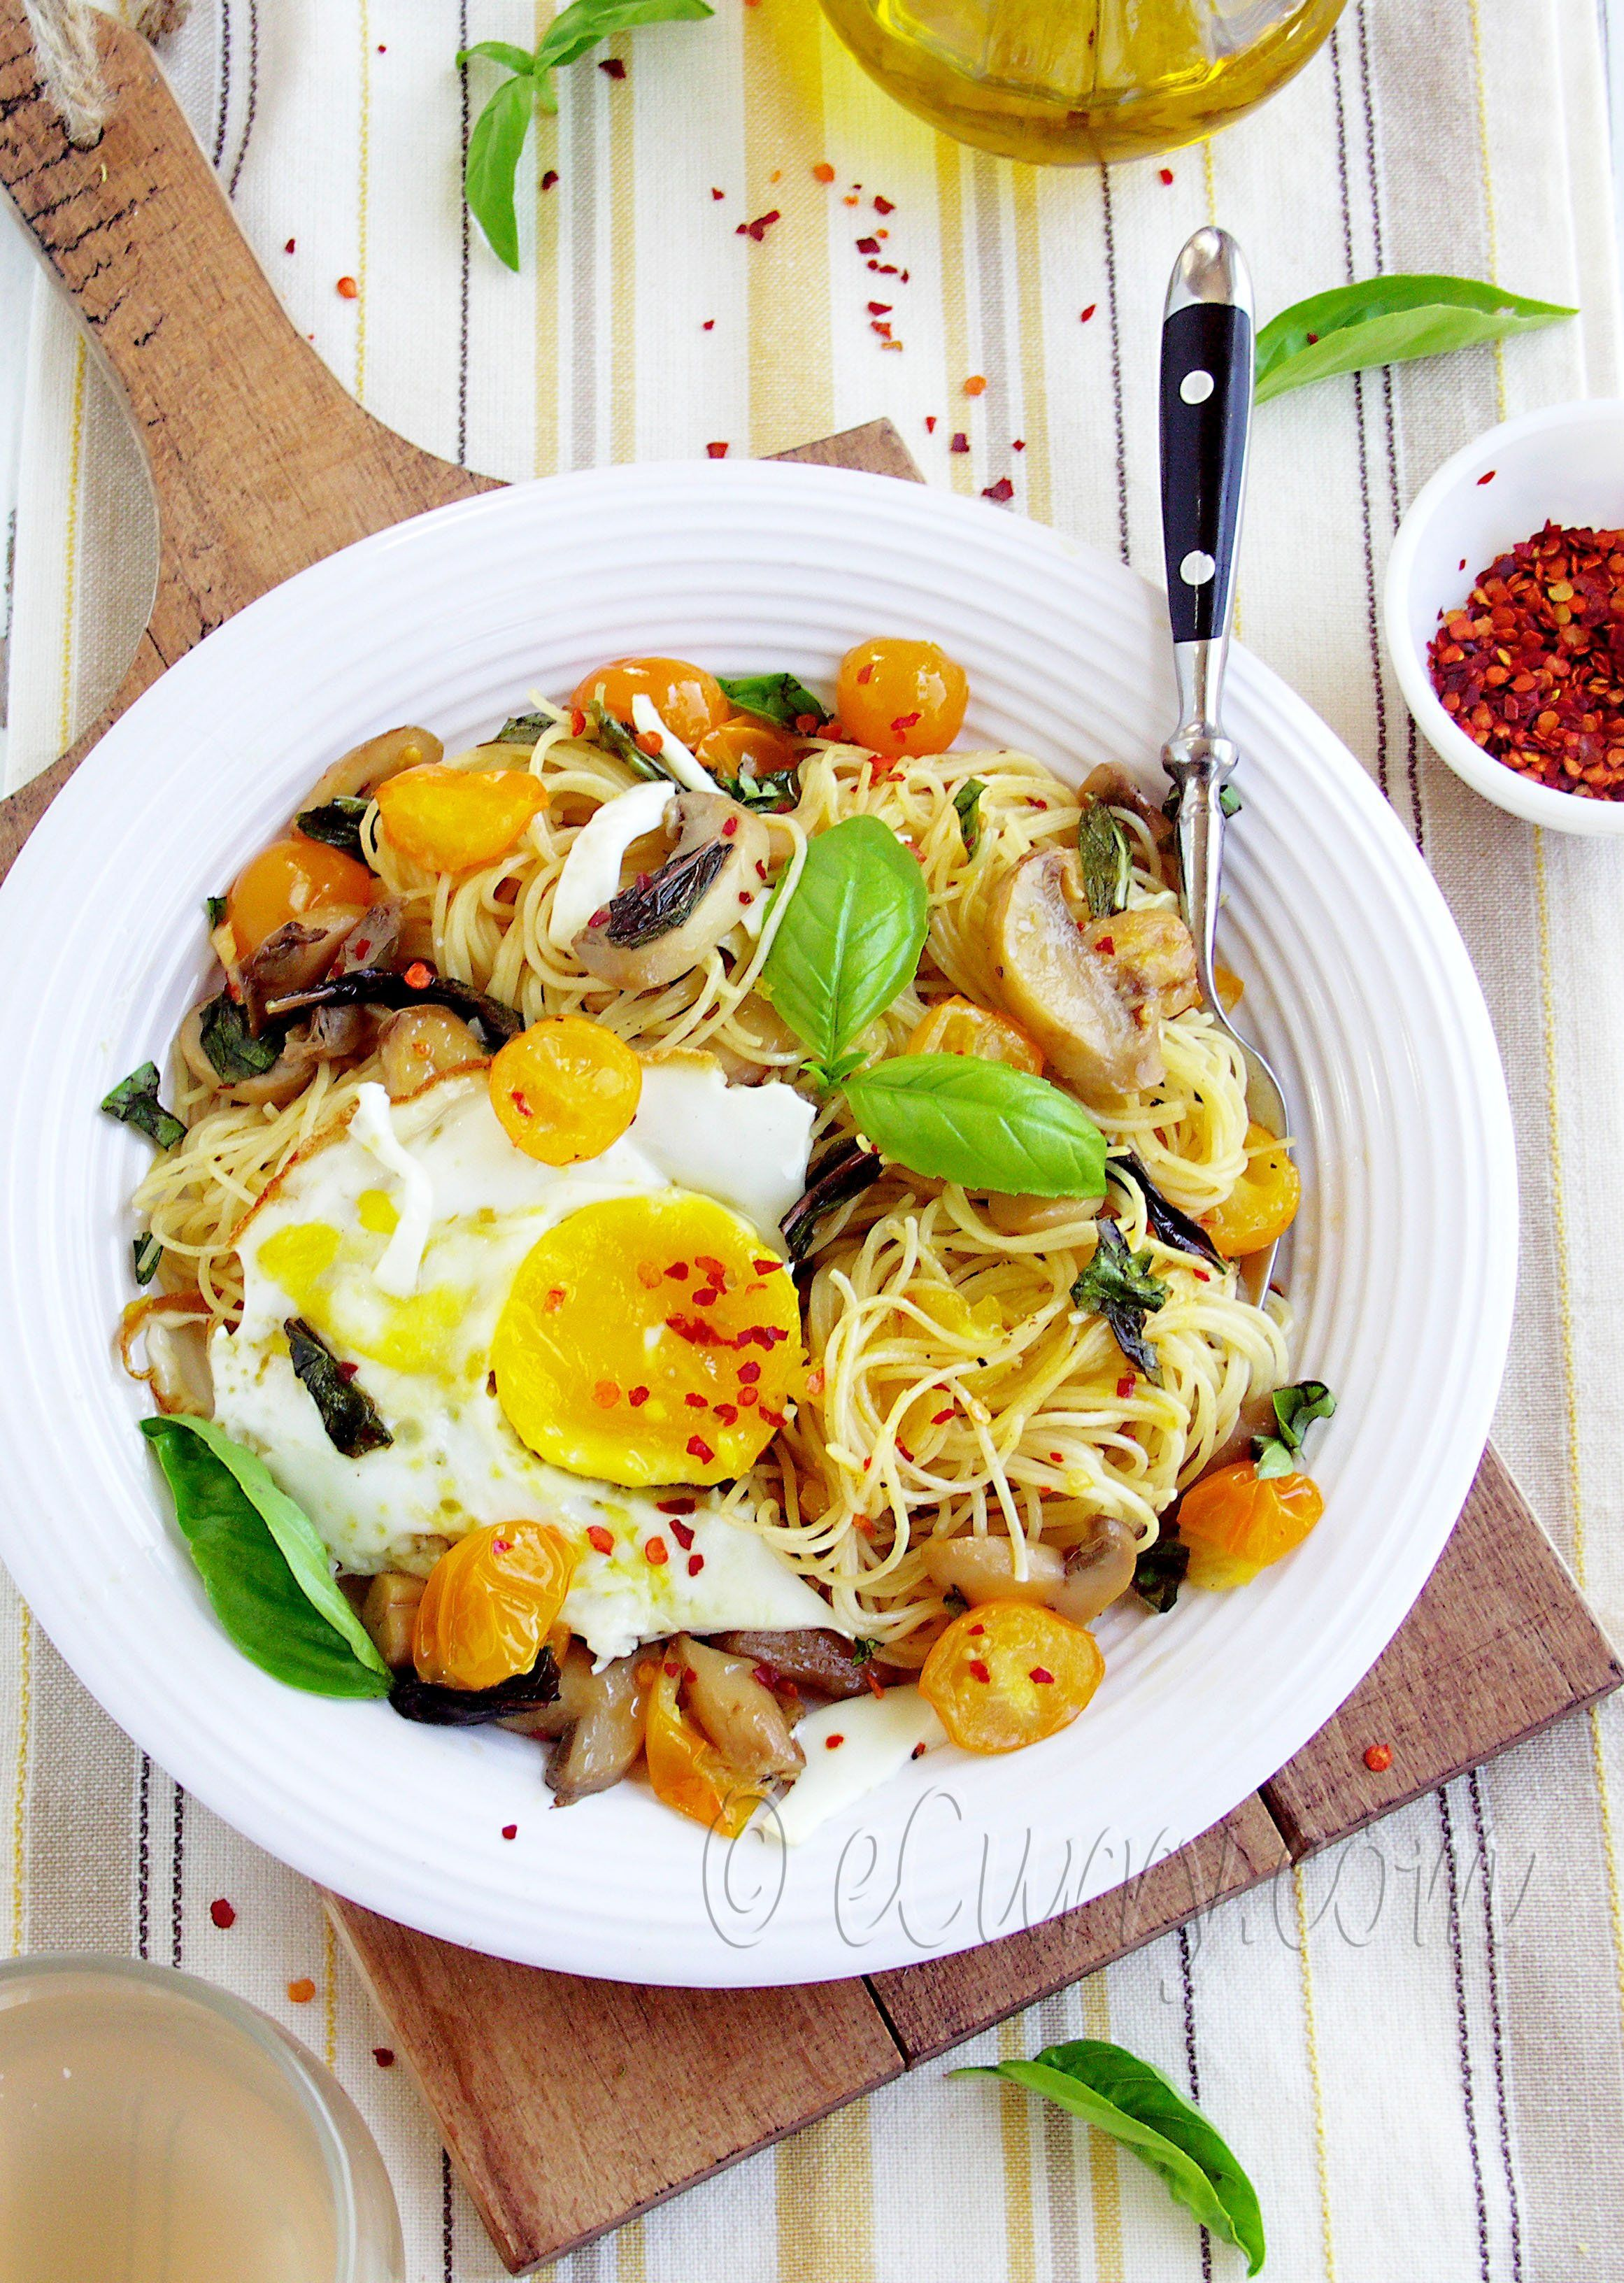 Angel Hair Pasta With Mushroom Basil And Fried Egg By Ecurry Eat